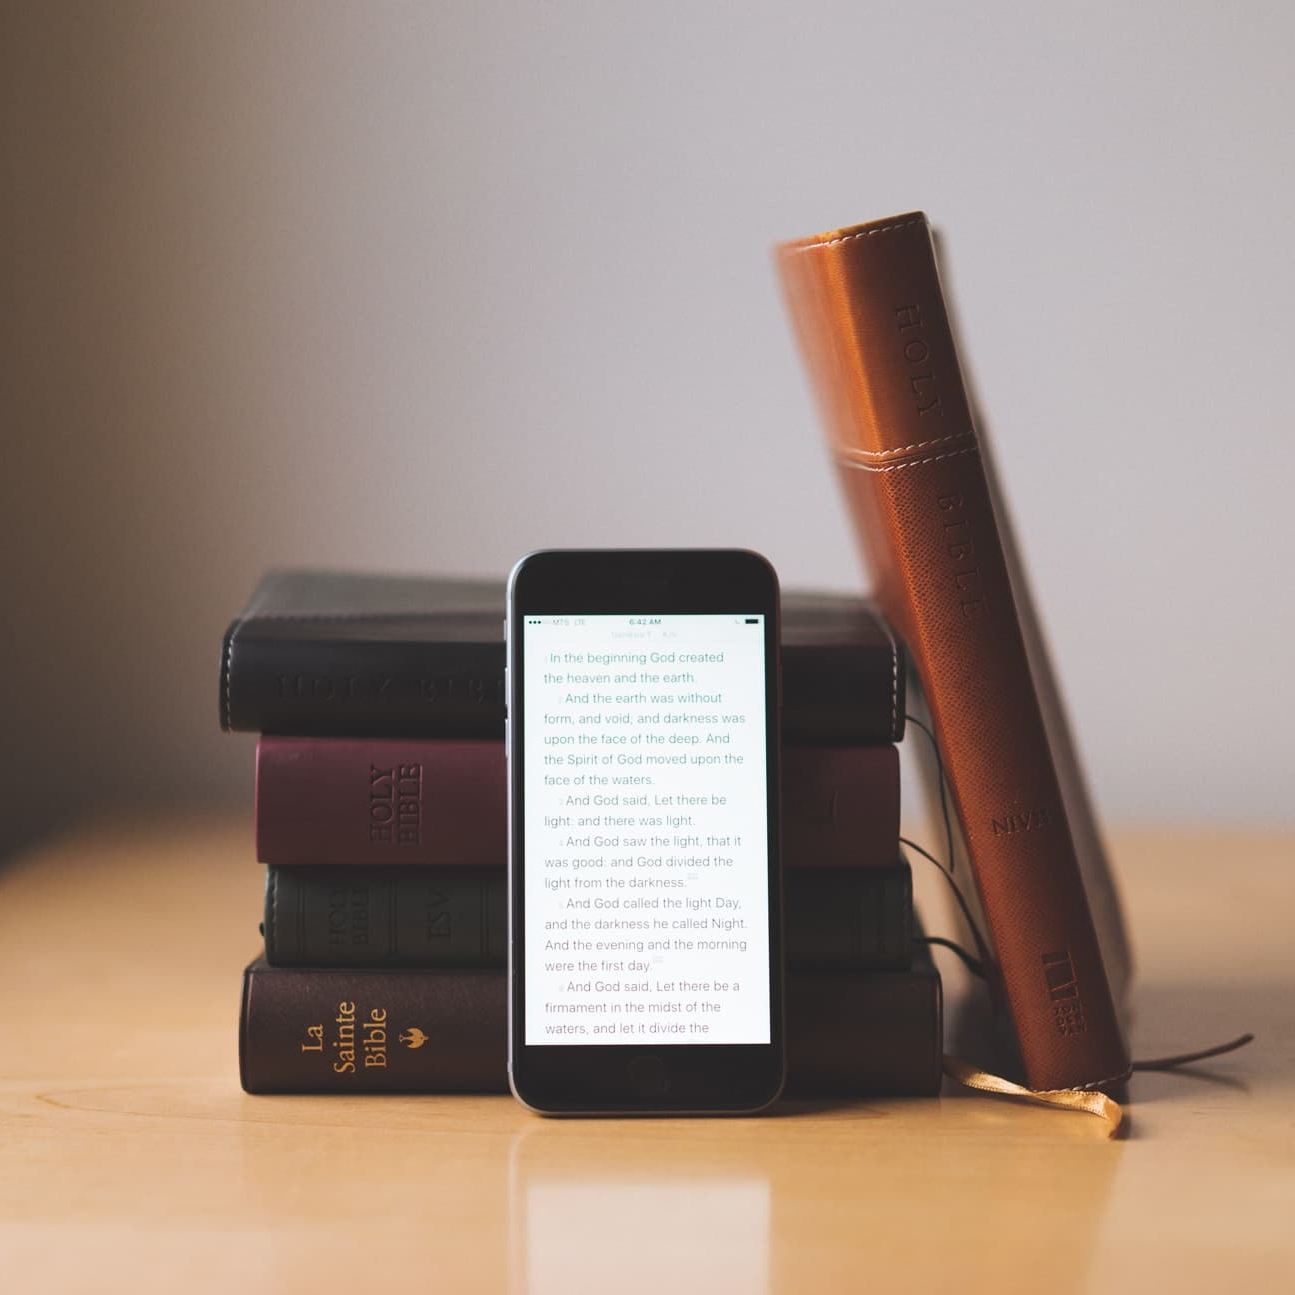 The Bible App - YouVersion is a valuable source for spending more time in God's word. Choose from more than 1,200 Bible versions in over 900 languages on your computer, phone, or tablet -- with many available as audio Bibles.